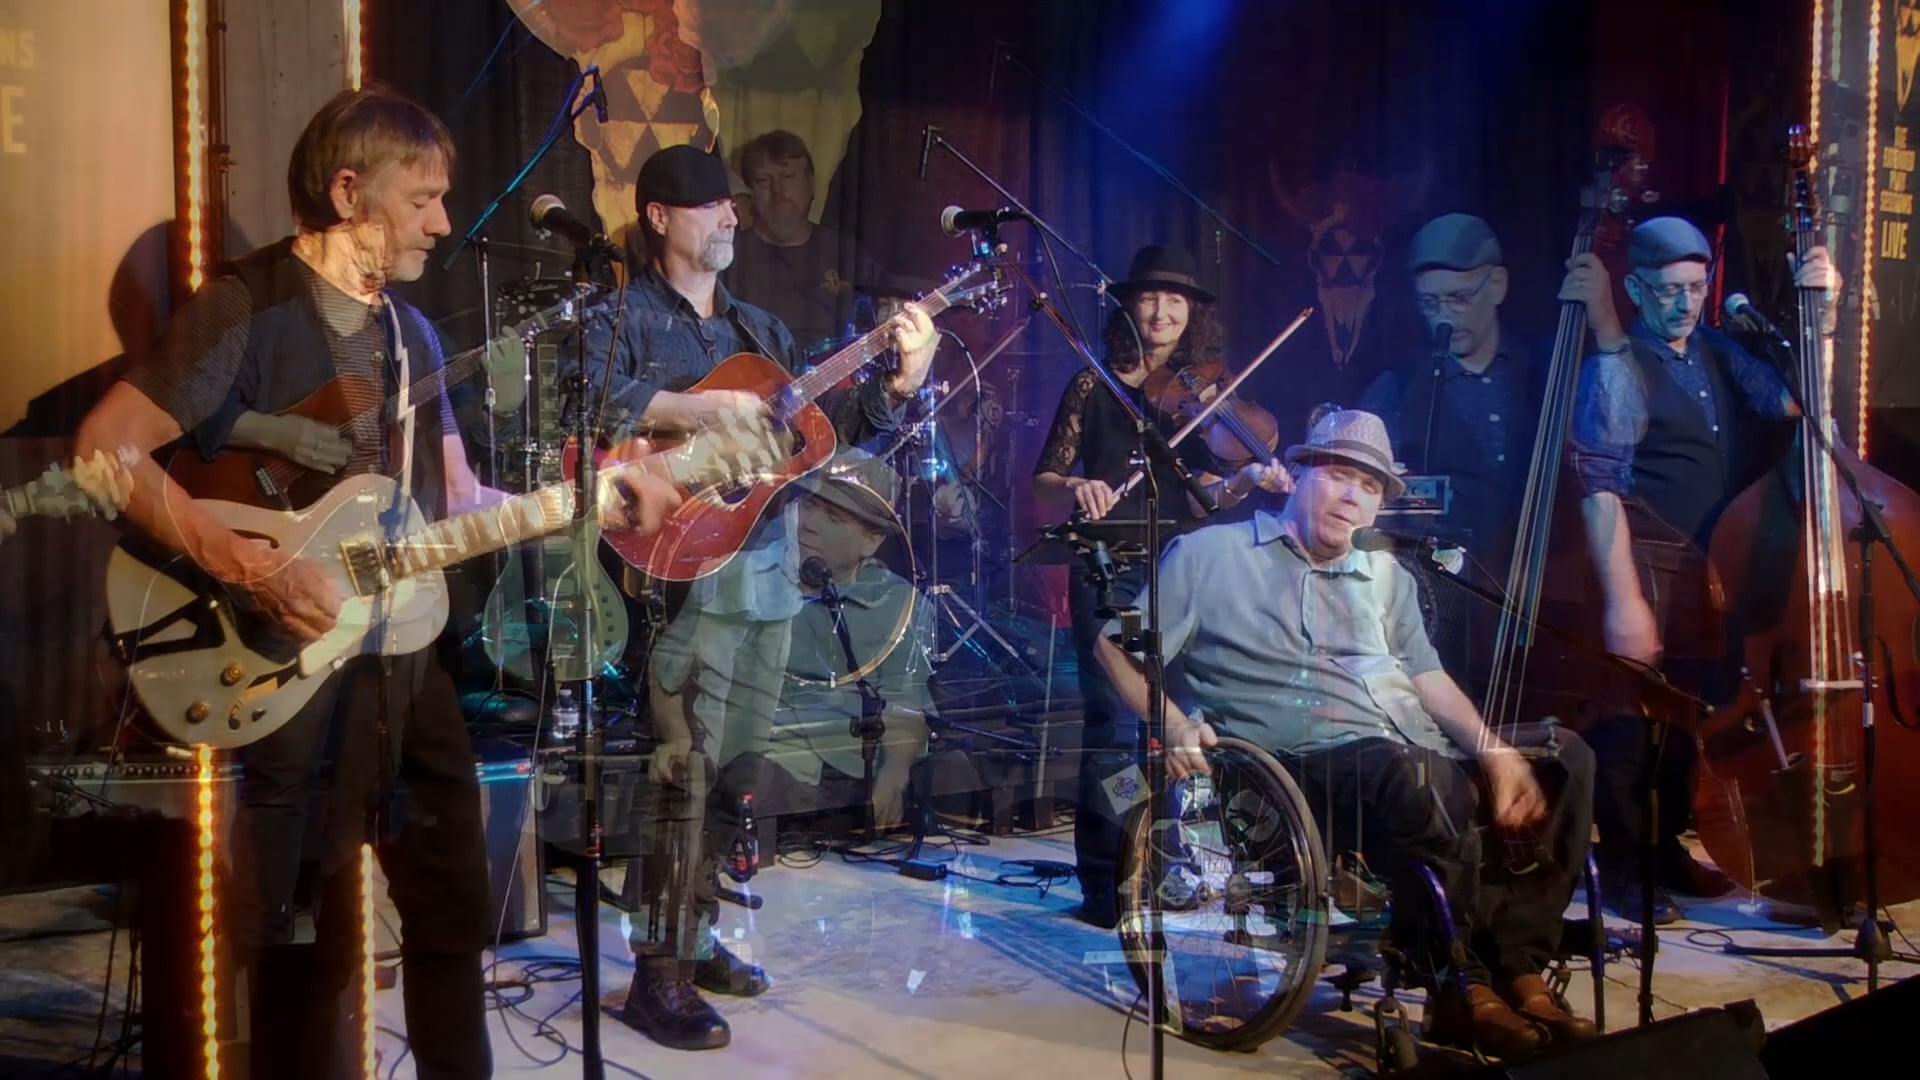 'Livin With the Blues' - Durham County Poets - from The Extended Play Sessions